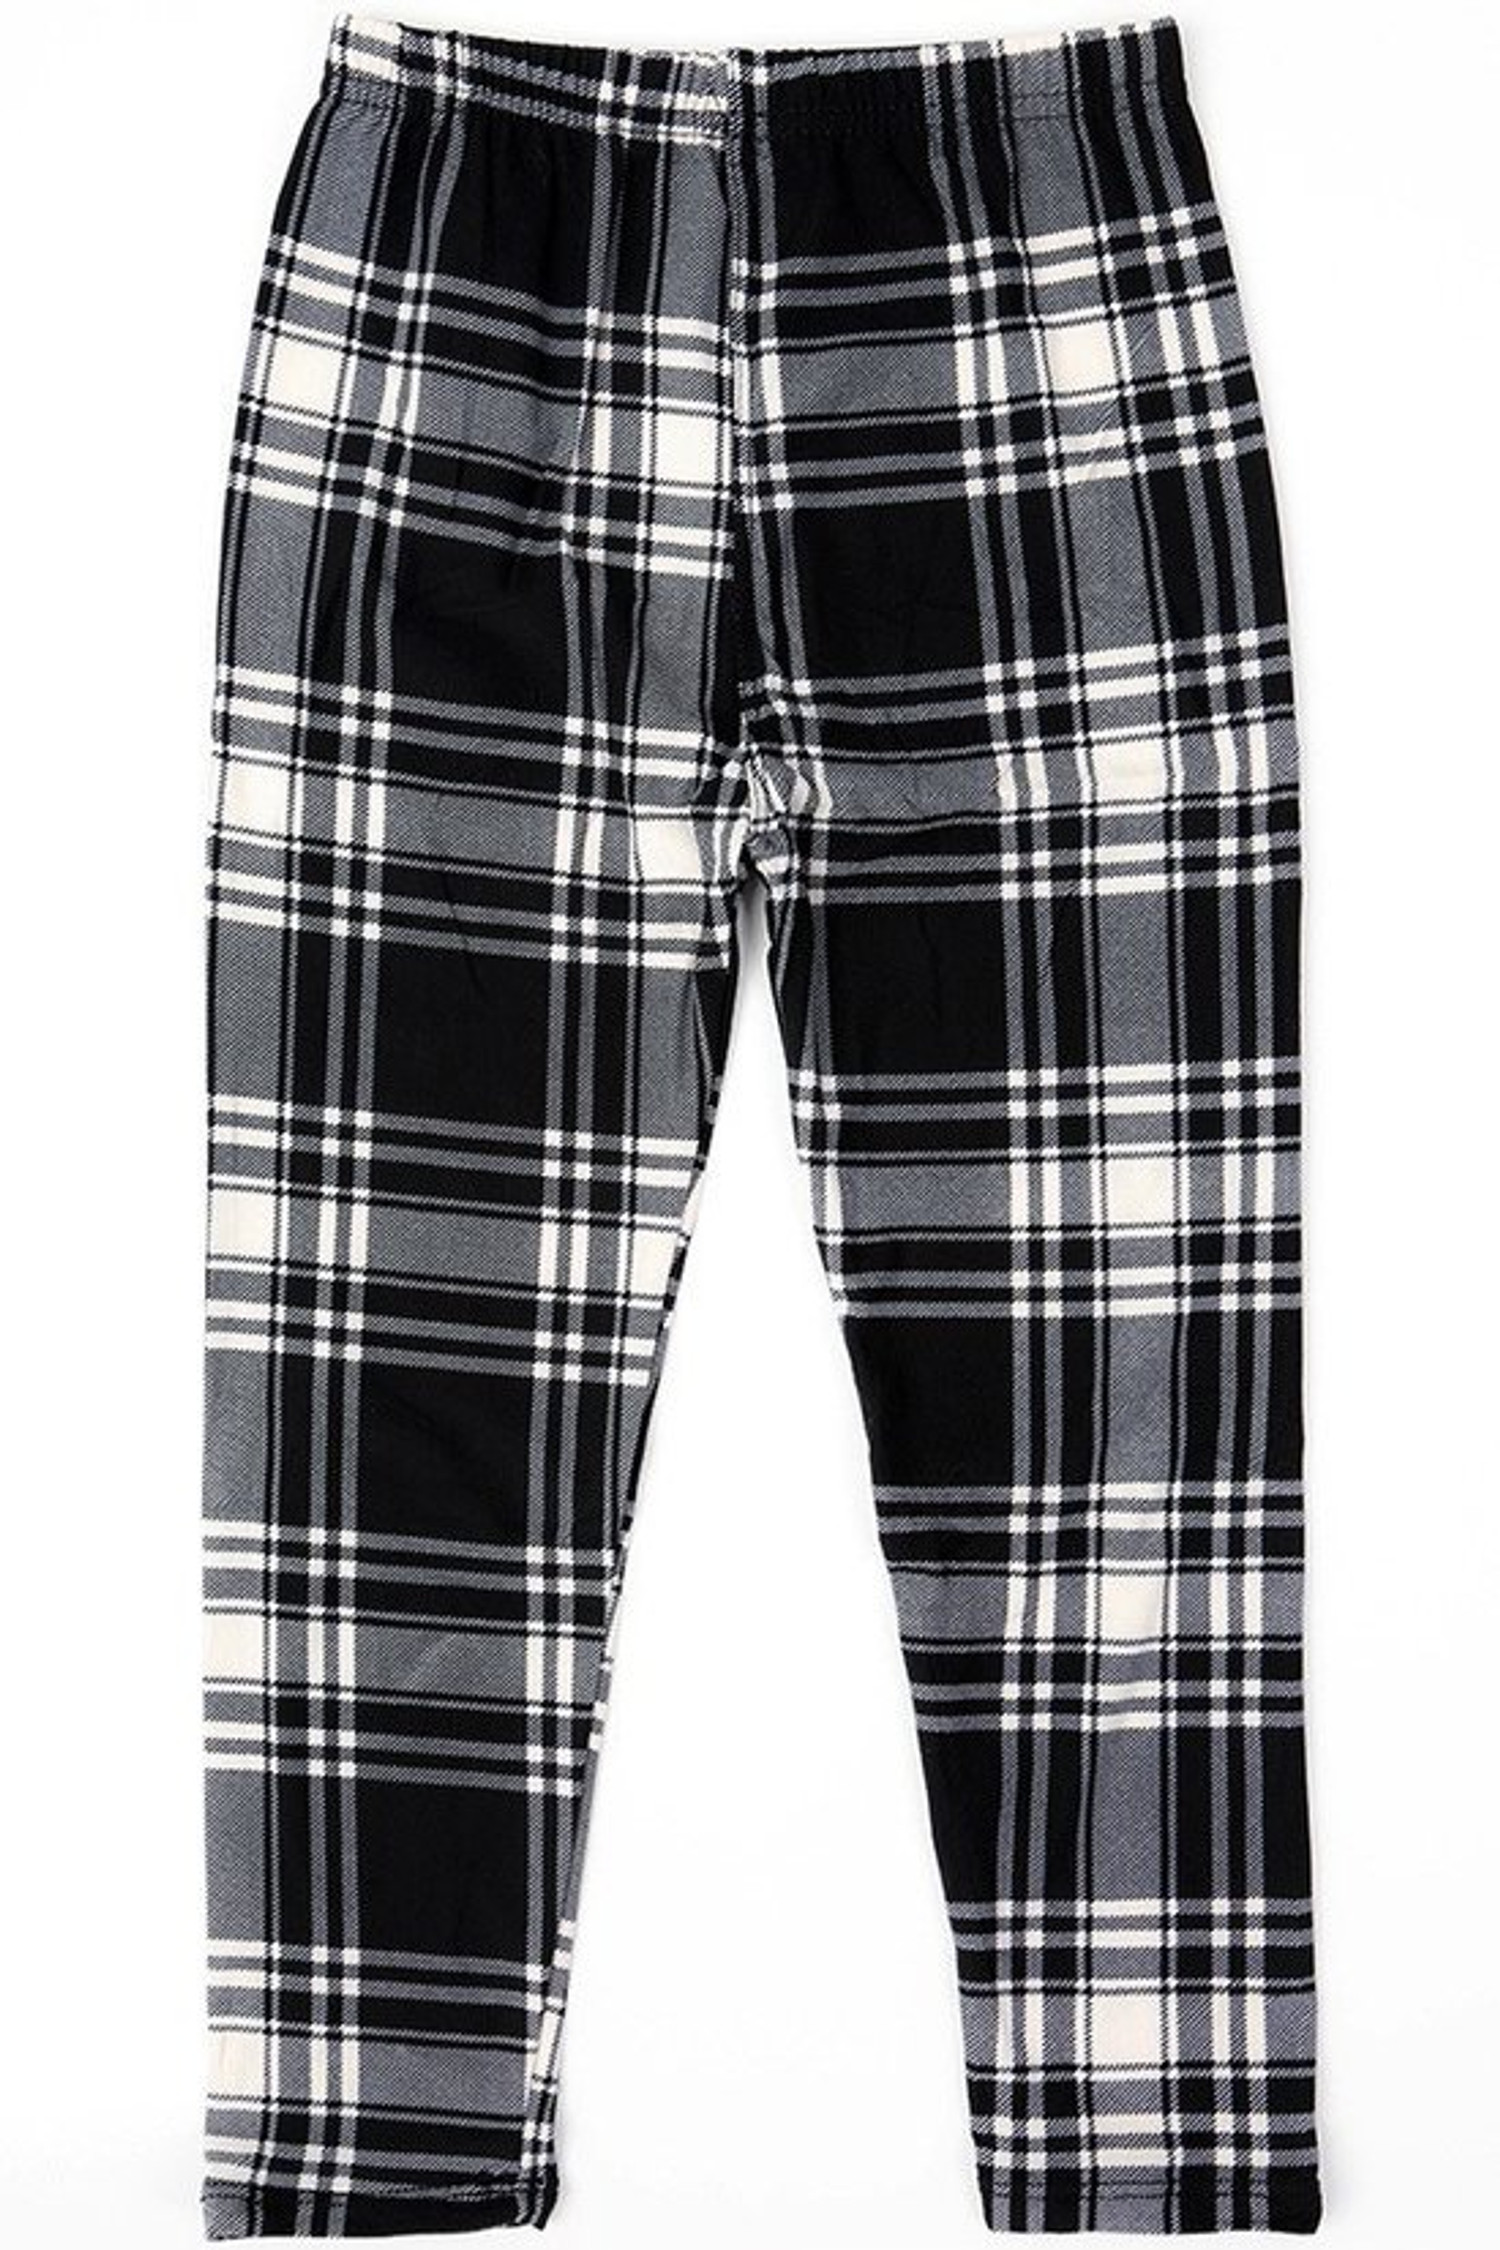 Brushed White Plaid Kids Leggings